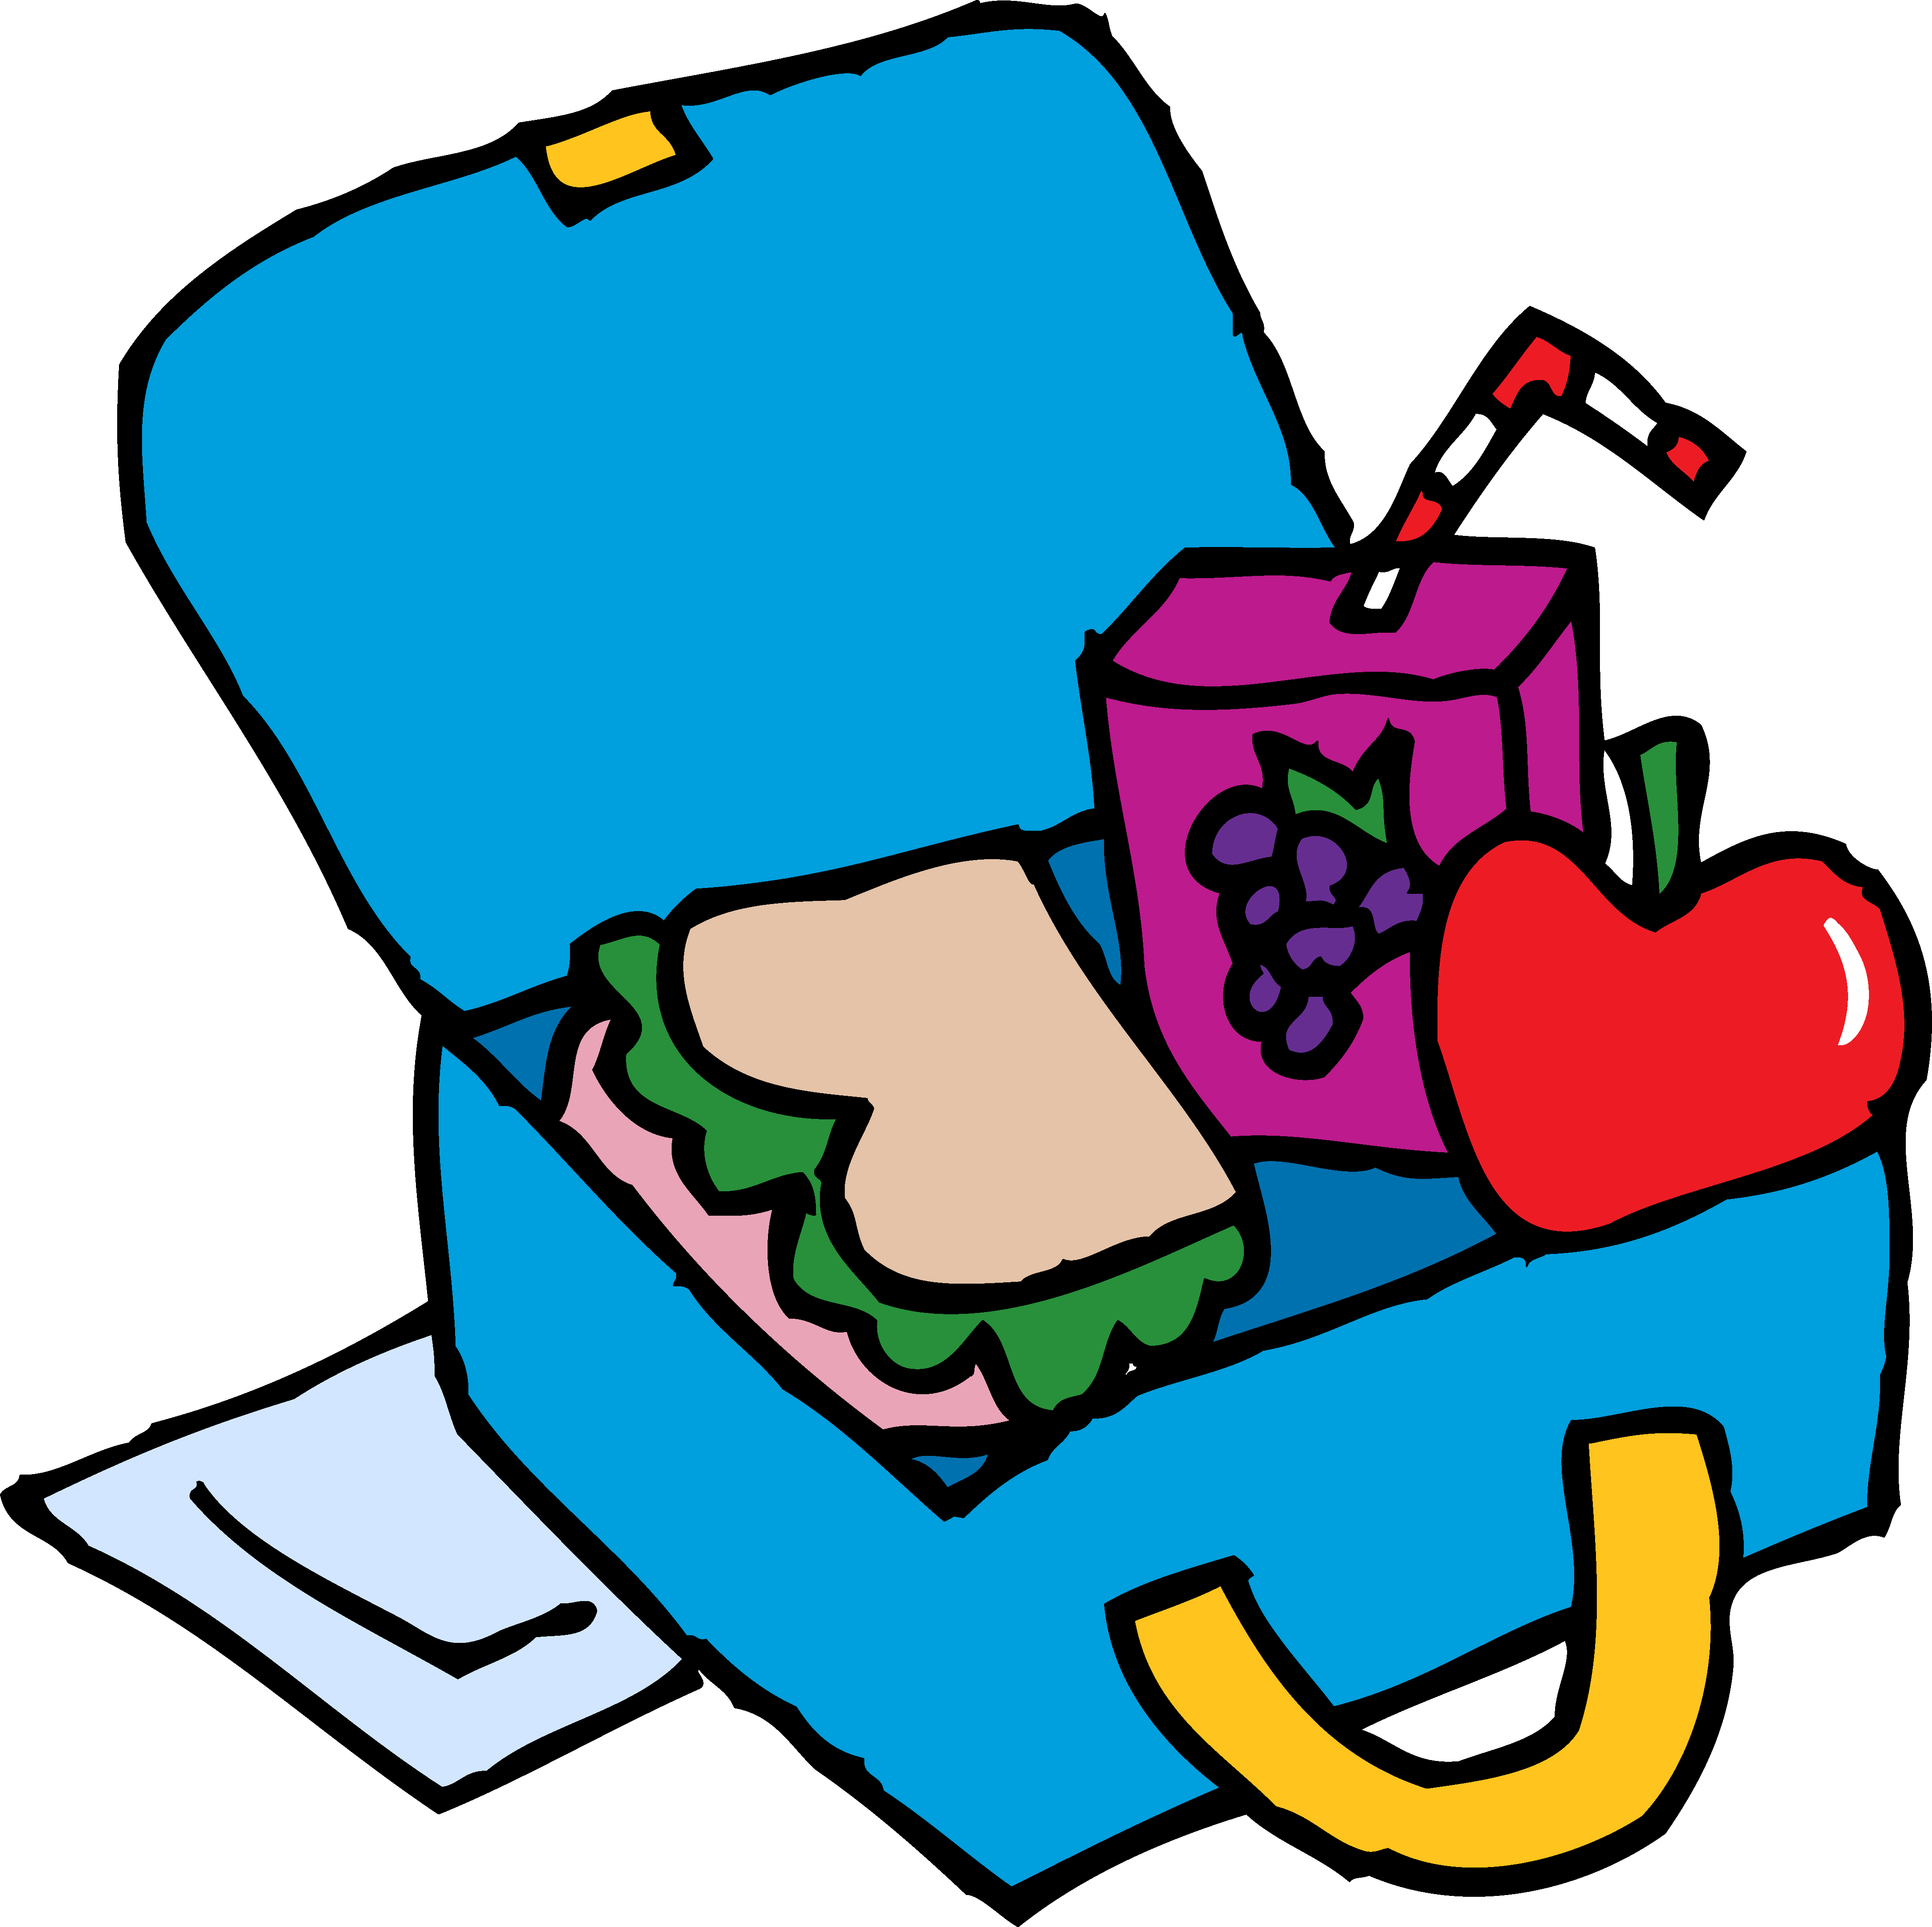 jpg royalty free library Nap clipart lunch time. School box clip art.